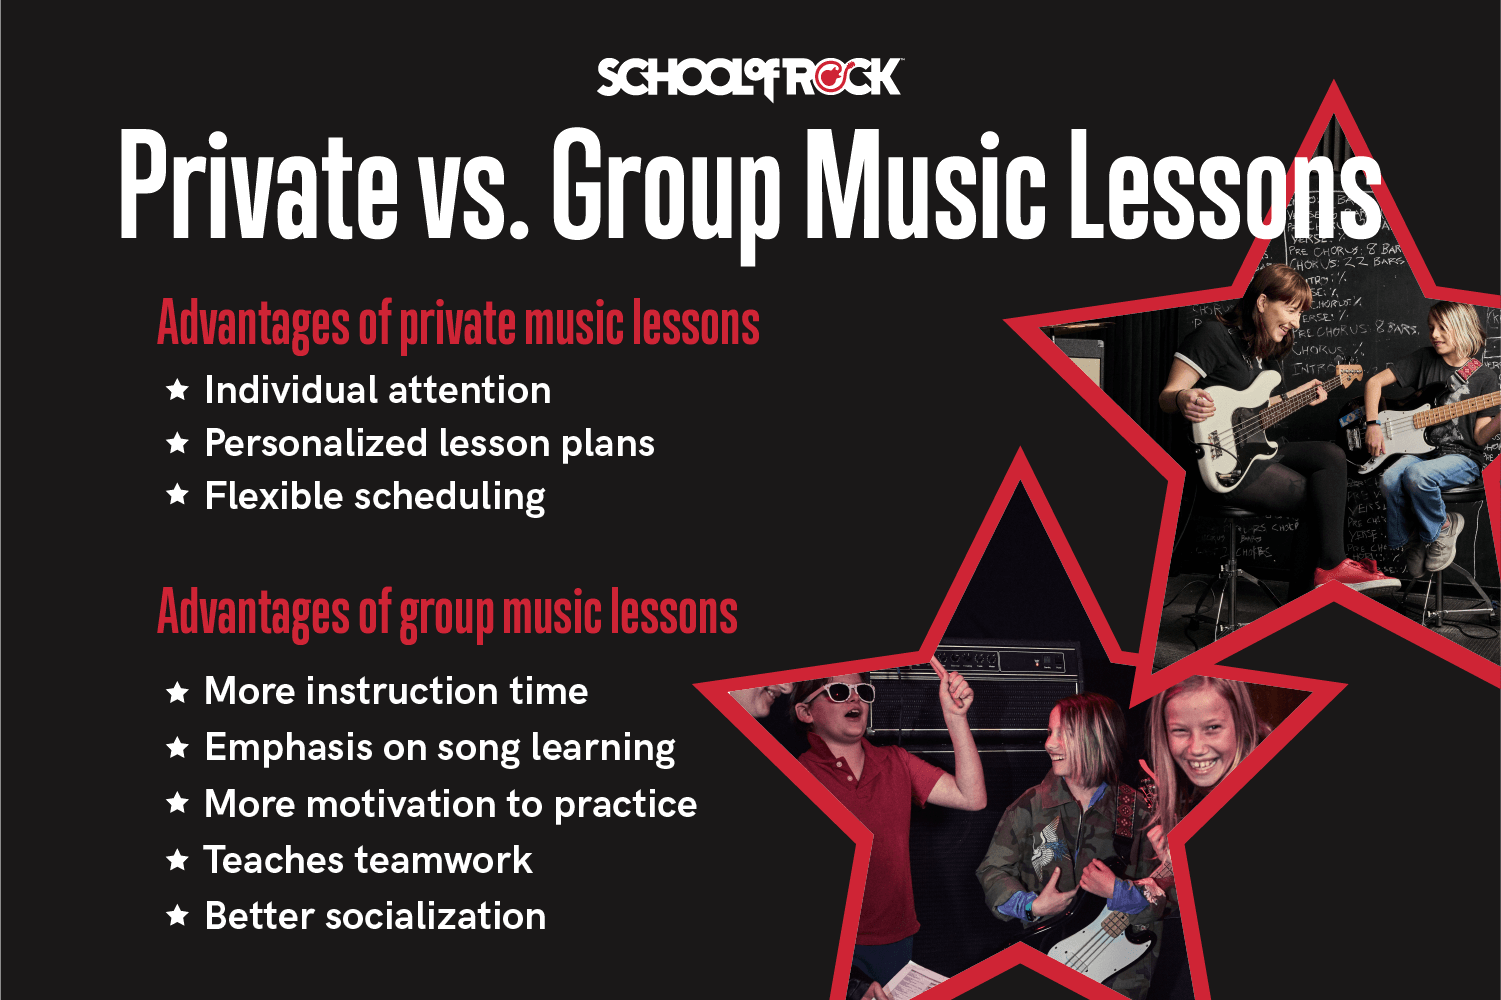 The advantages and disadvantages of private versus group music lessons.